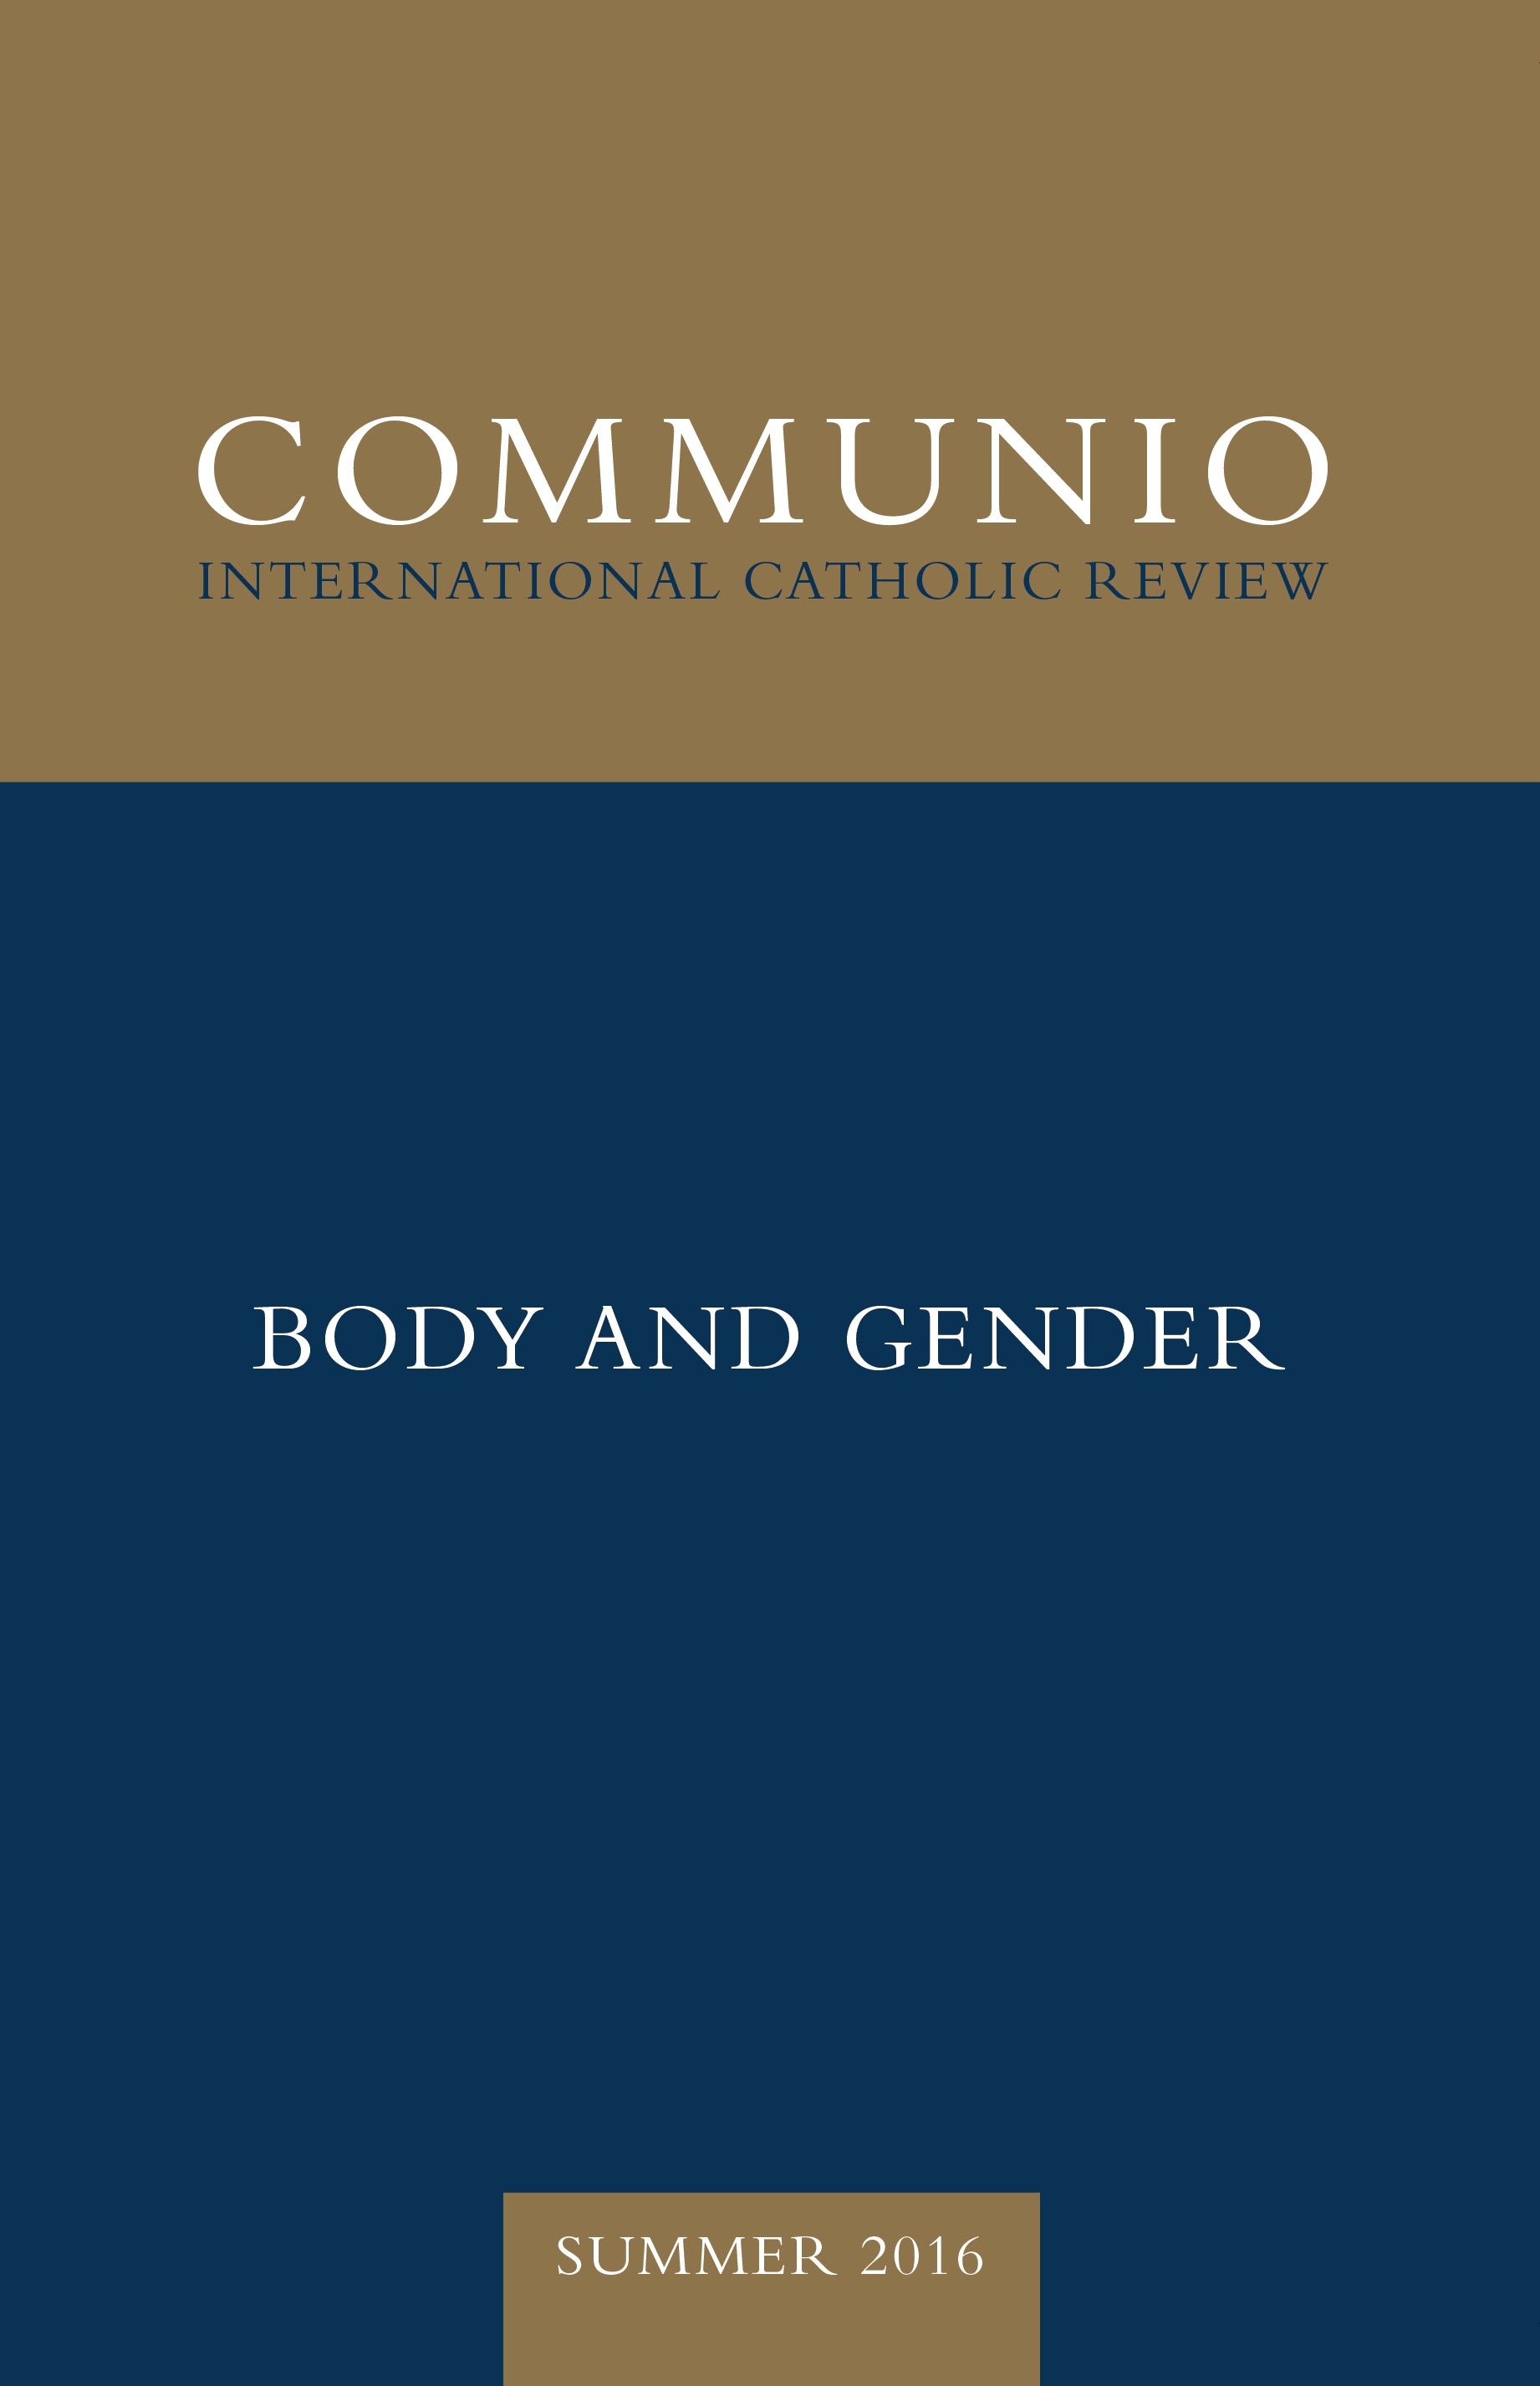 Communio - Summer 2016 - Body and Gender